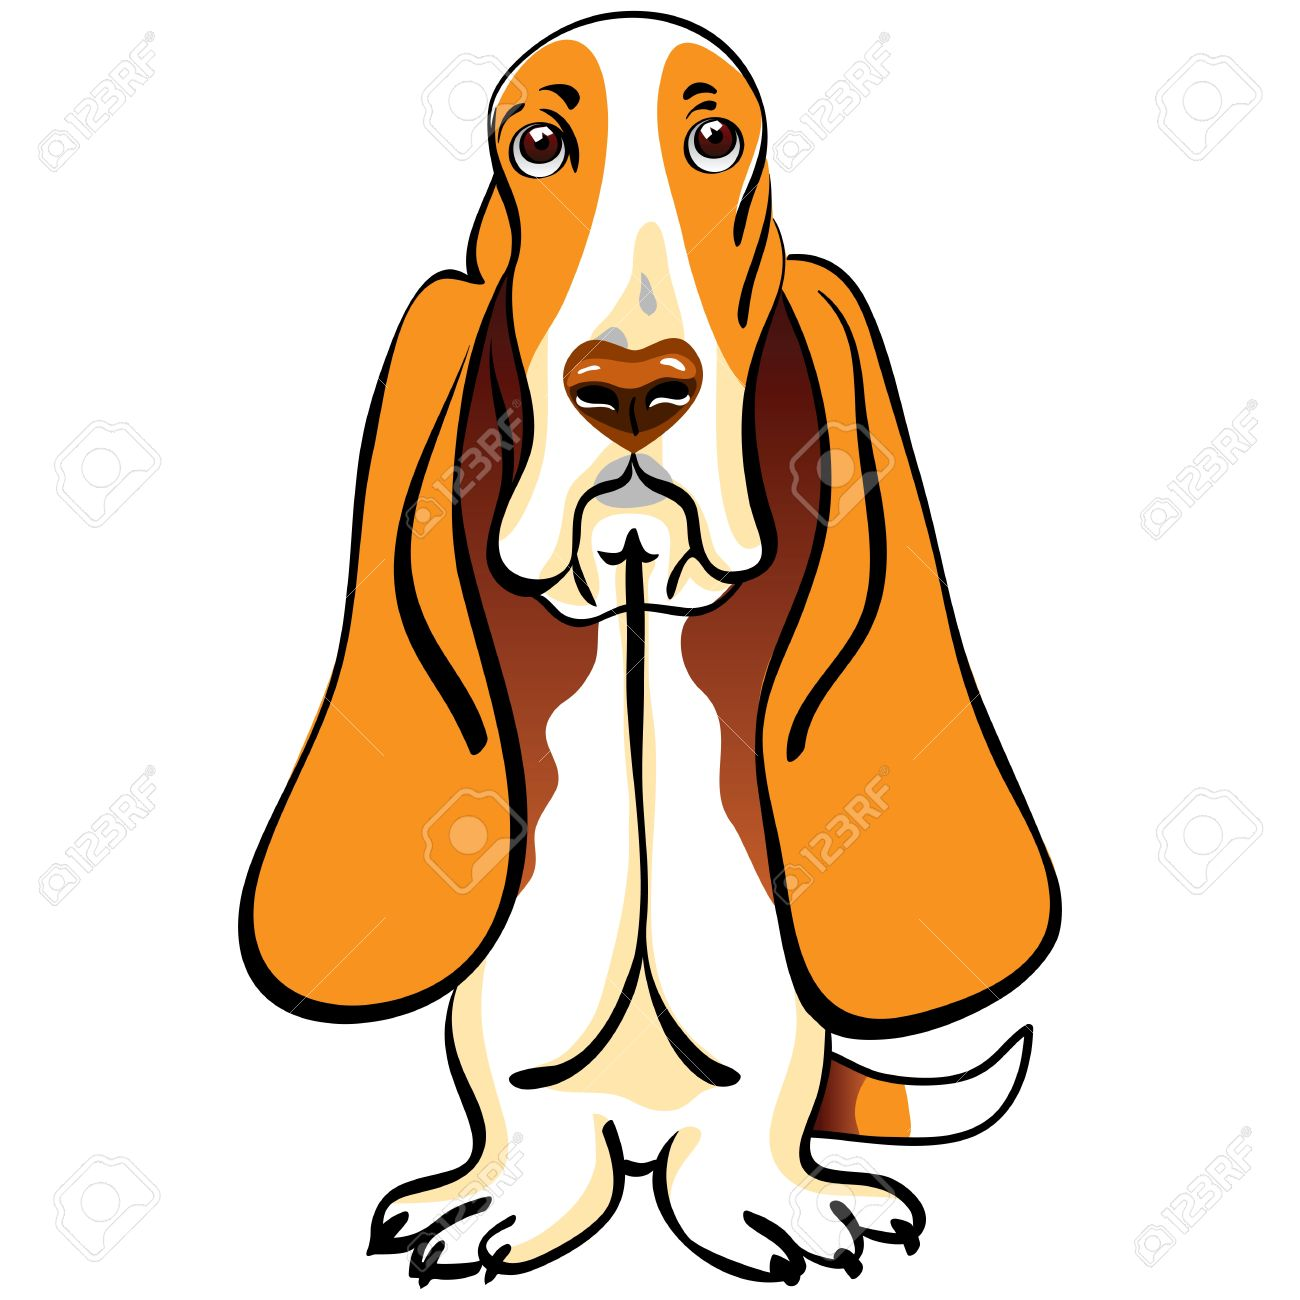 1 000 basset hound stock illustrations cliparts and royalty free rh 123rf com basset hound puppy clipart basset hound clipart